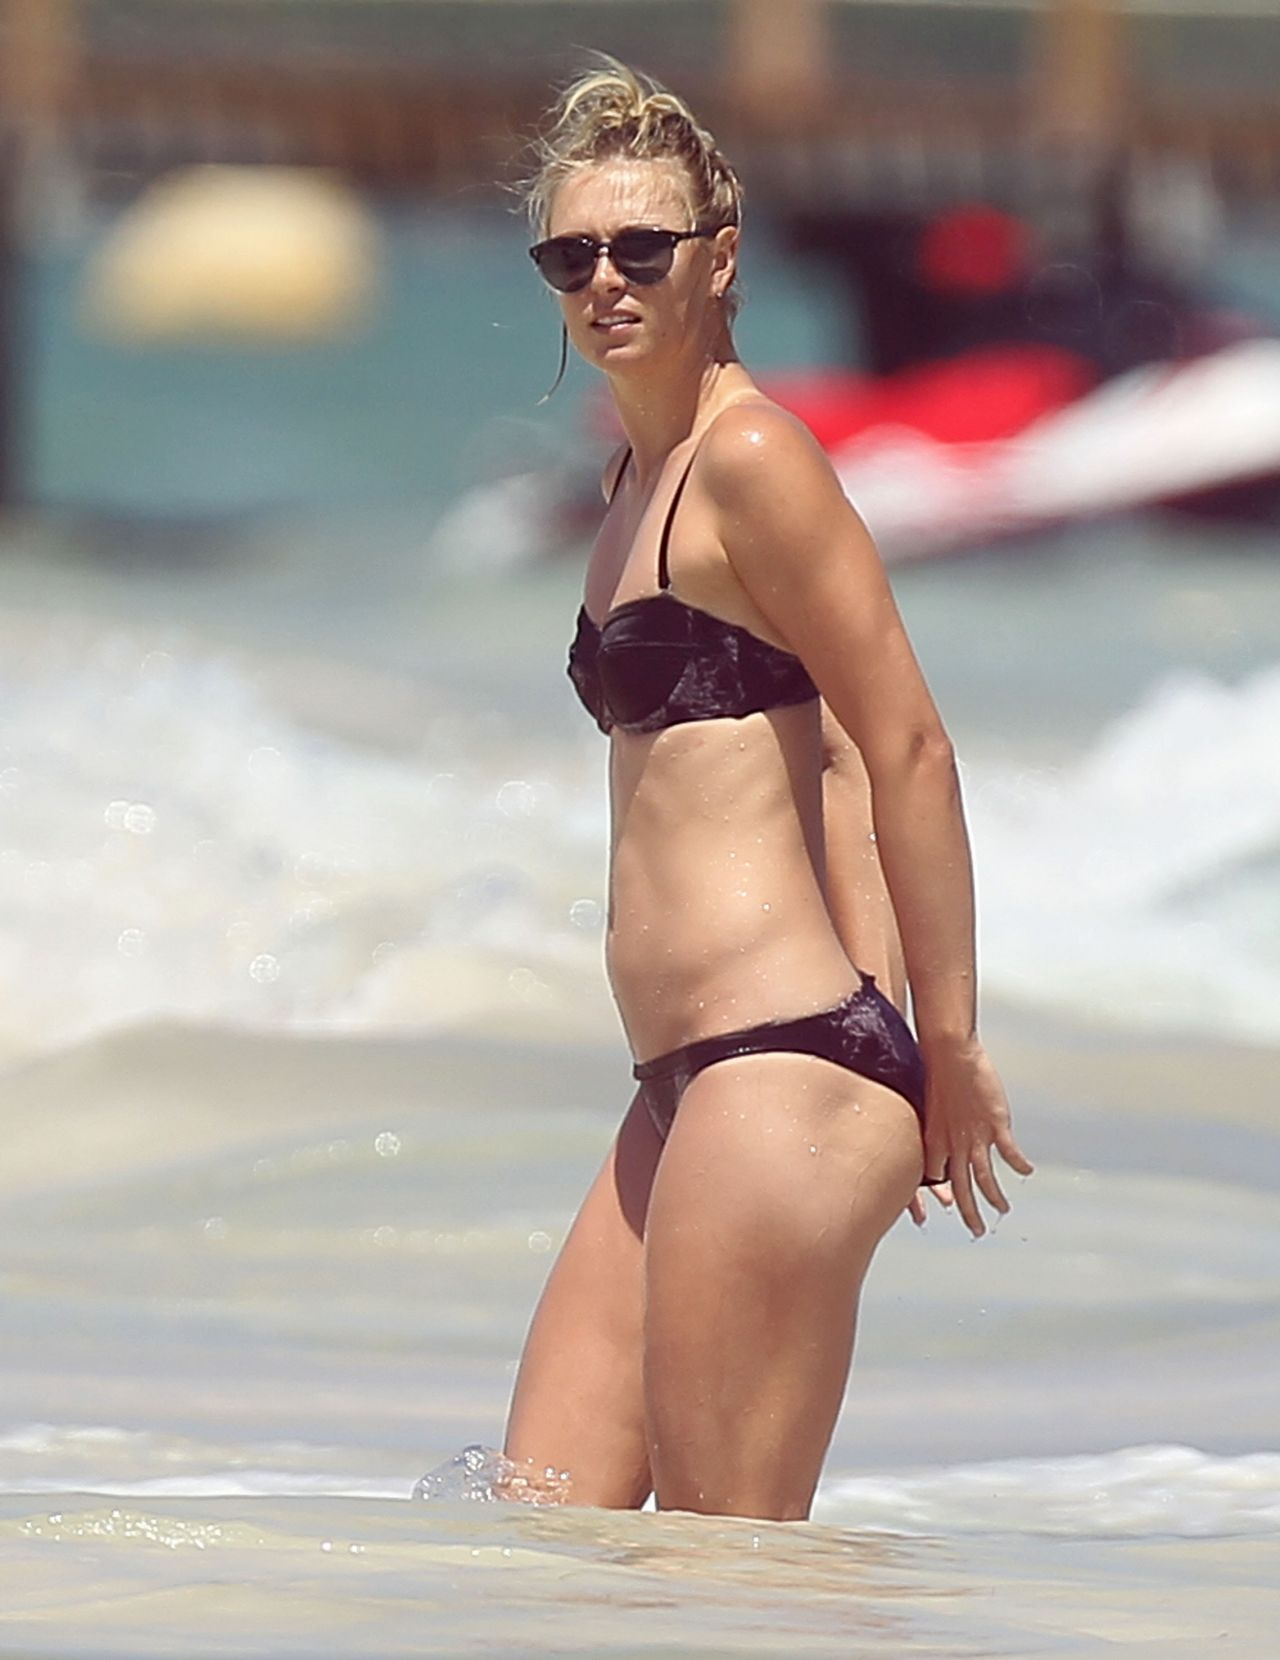 Maria Sharapova Bikini Candids - Cancun, April 2014